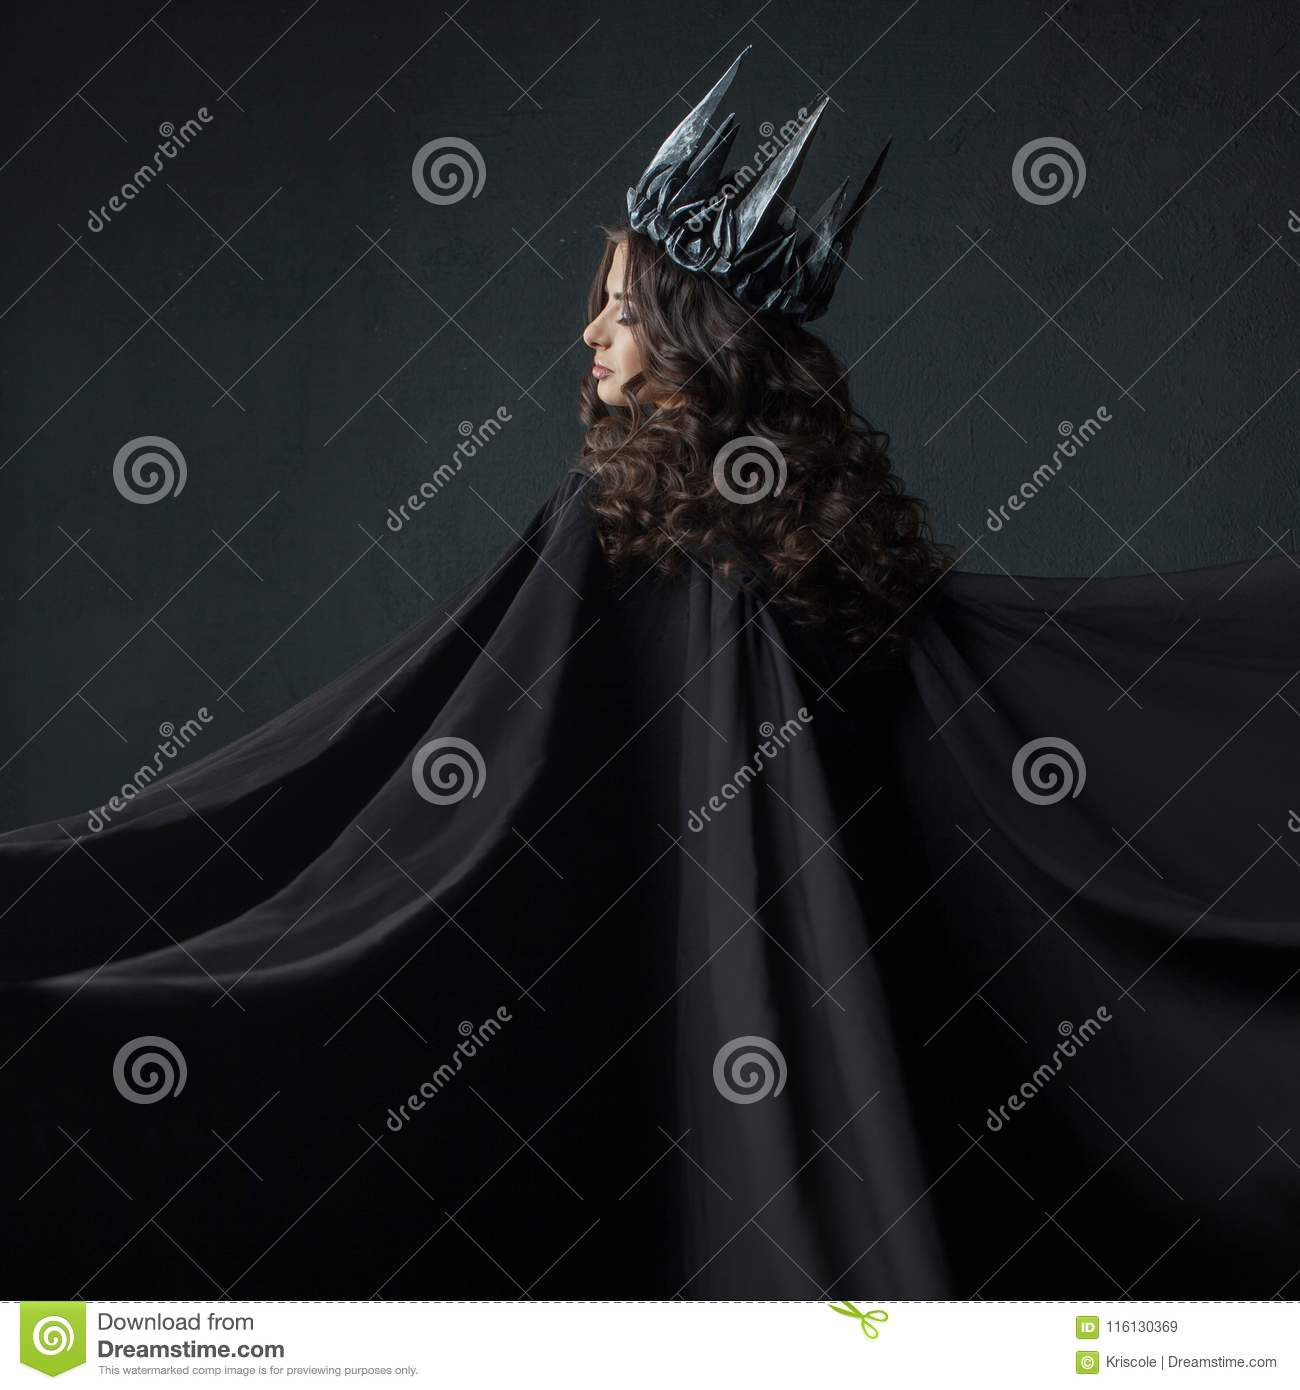 Portrait of a Gothic Princess. Gothic Queen. Image on Halloween. Young beautiful woman in black